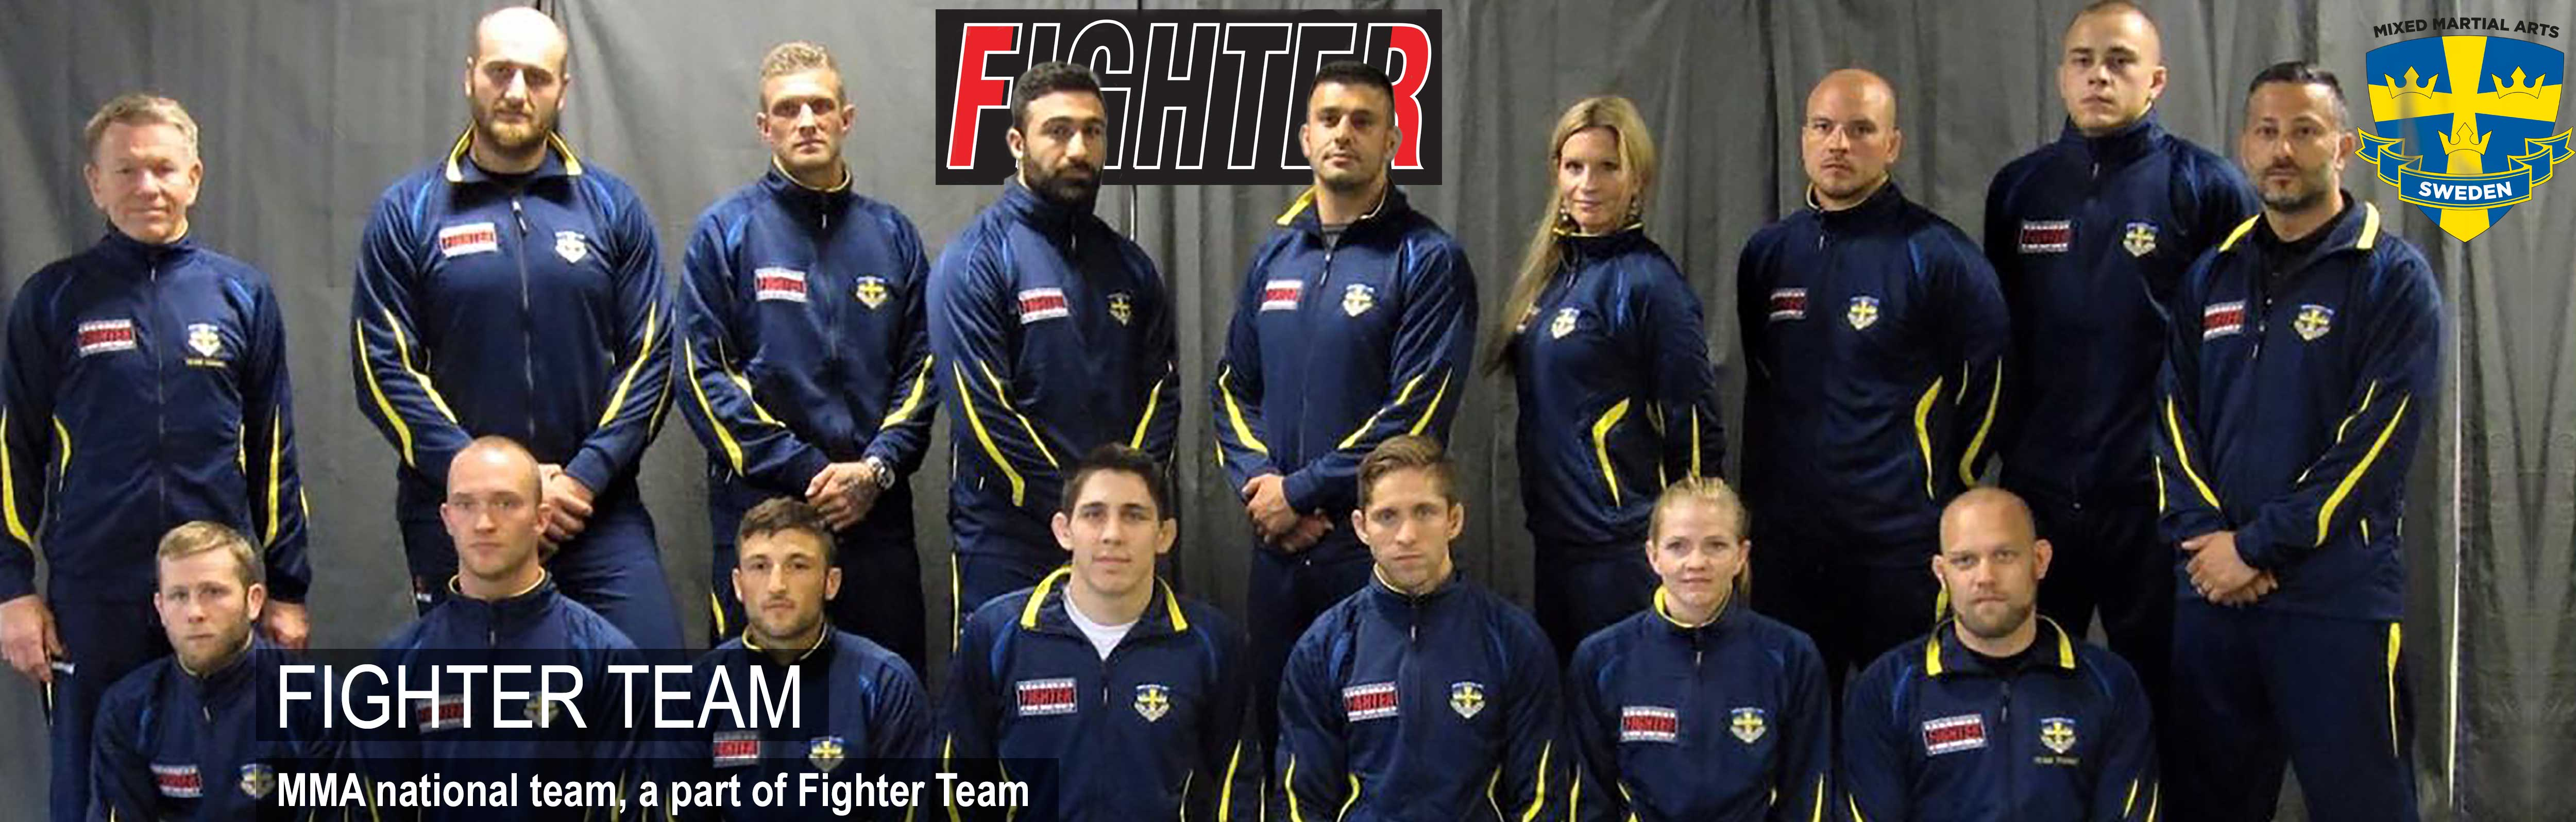 Fighter Team MMA landslaget